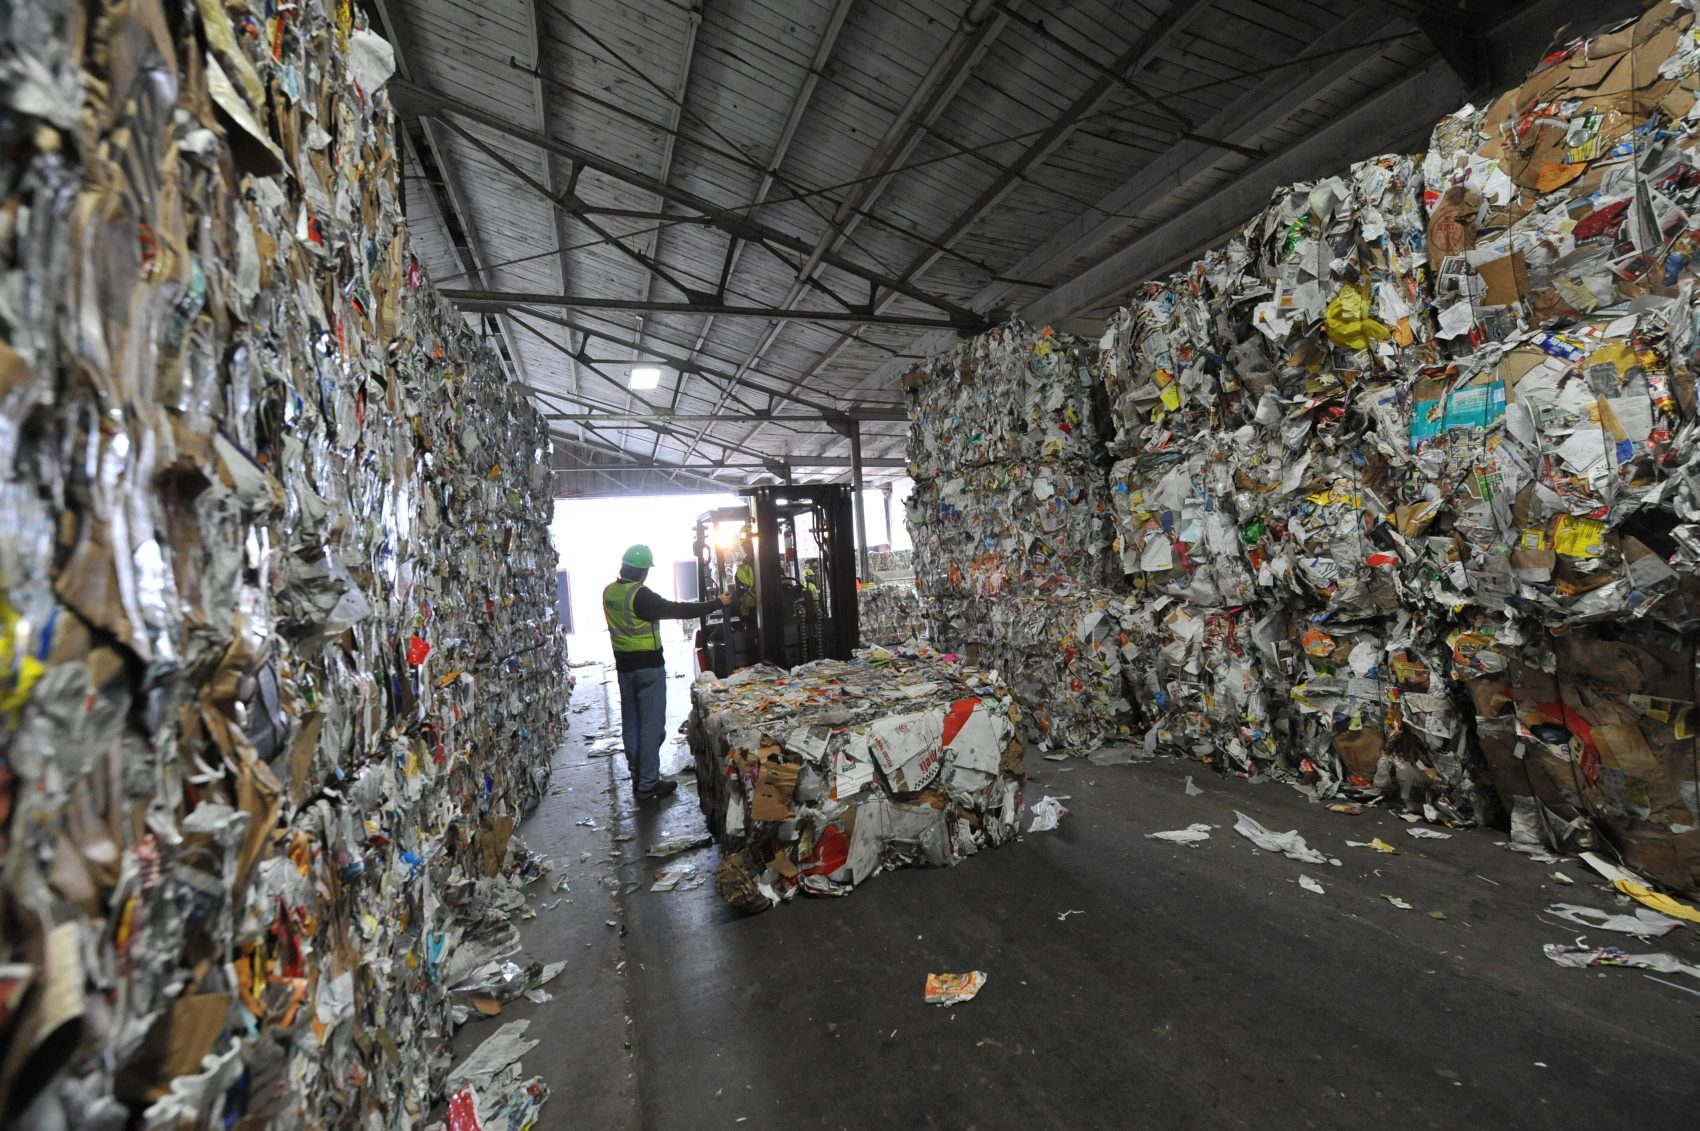 As online retailers like Amazon continue to grow, companies like Waste Management -- the largest disposal company in the U.S. -- have to adapt. (Courtesy Waste Management)